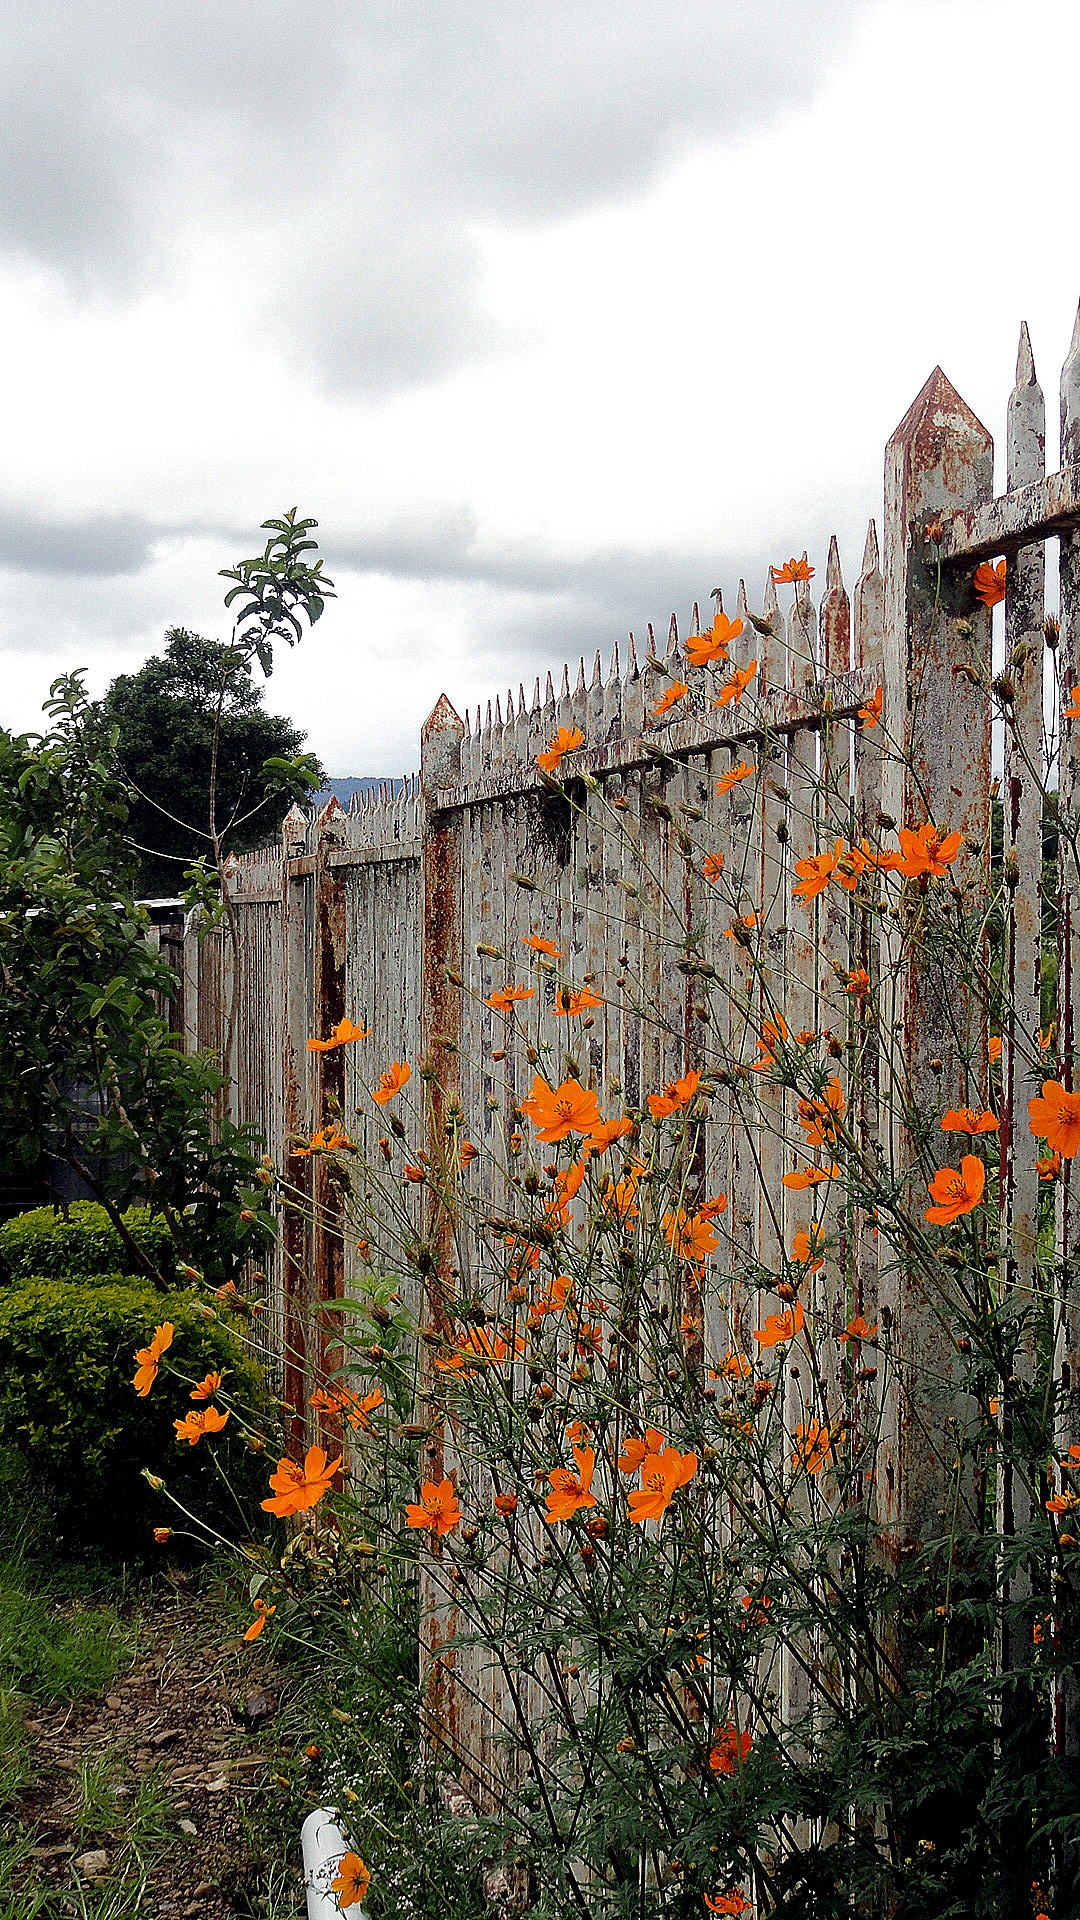 Flowers & A Fence